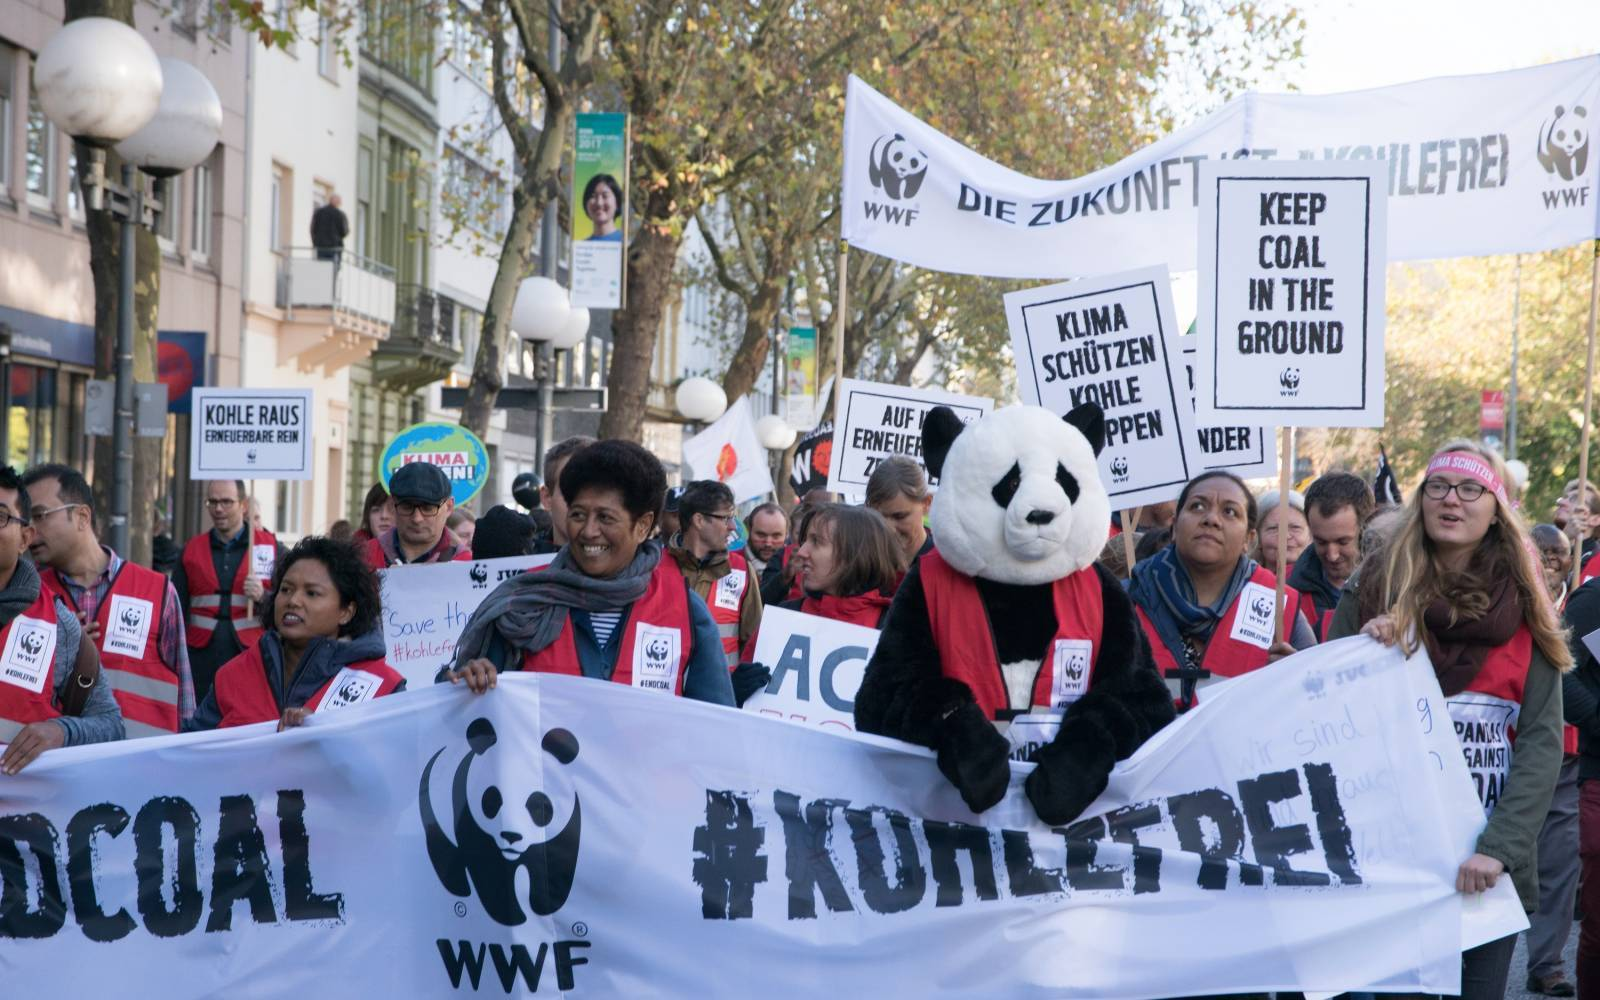 WWF at Climate March in Bonn at COP23 2017